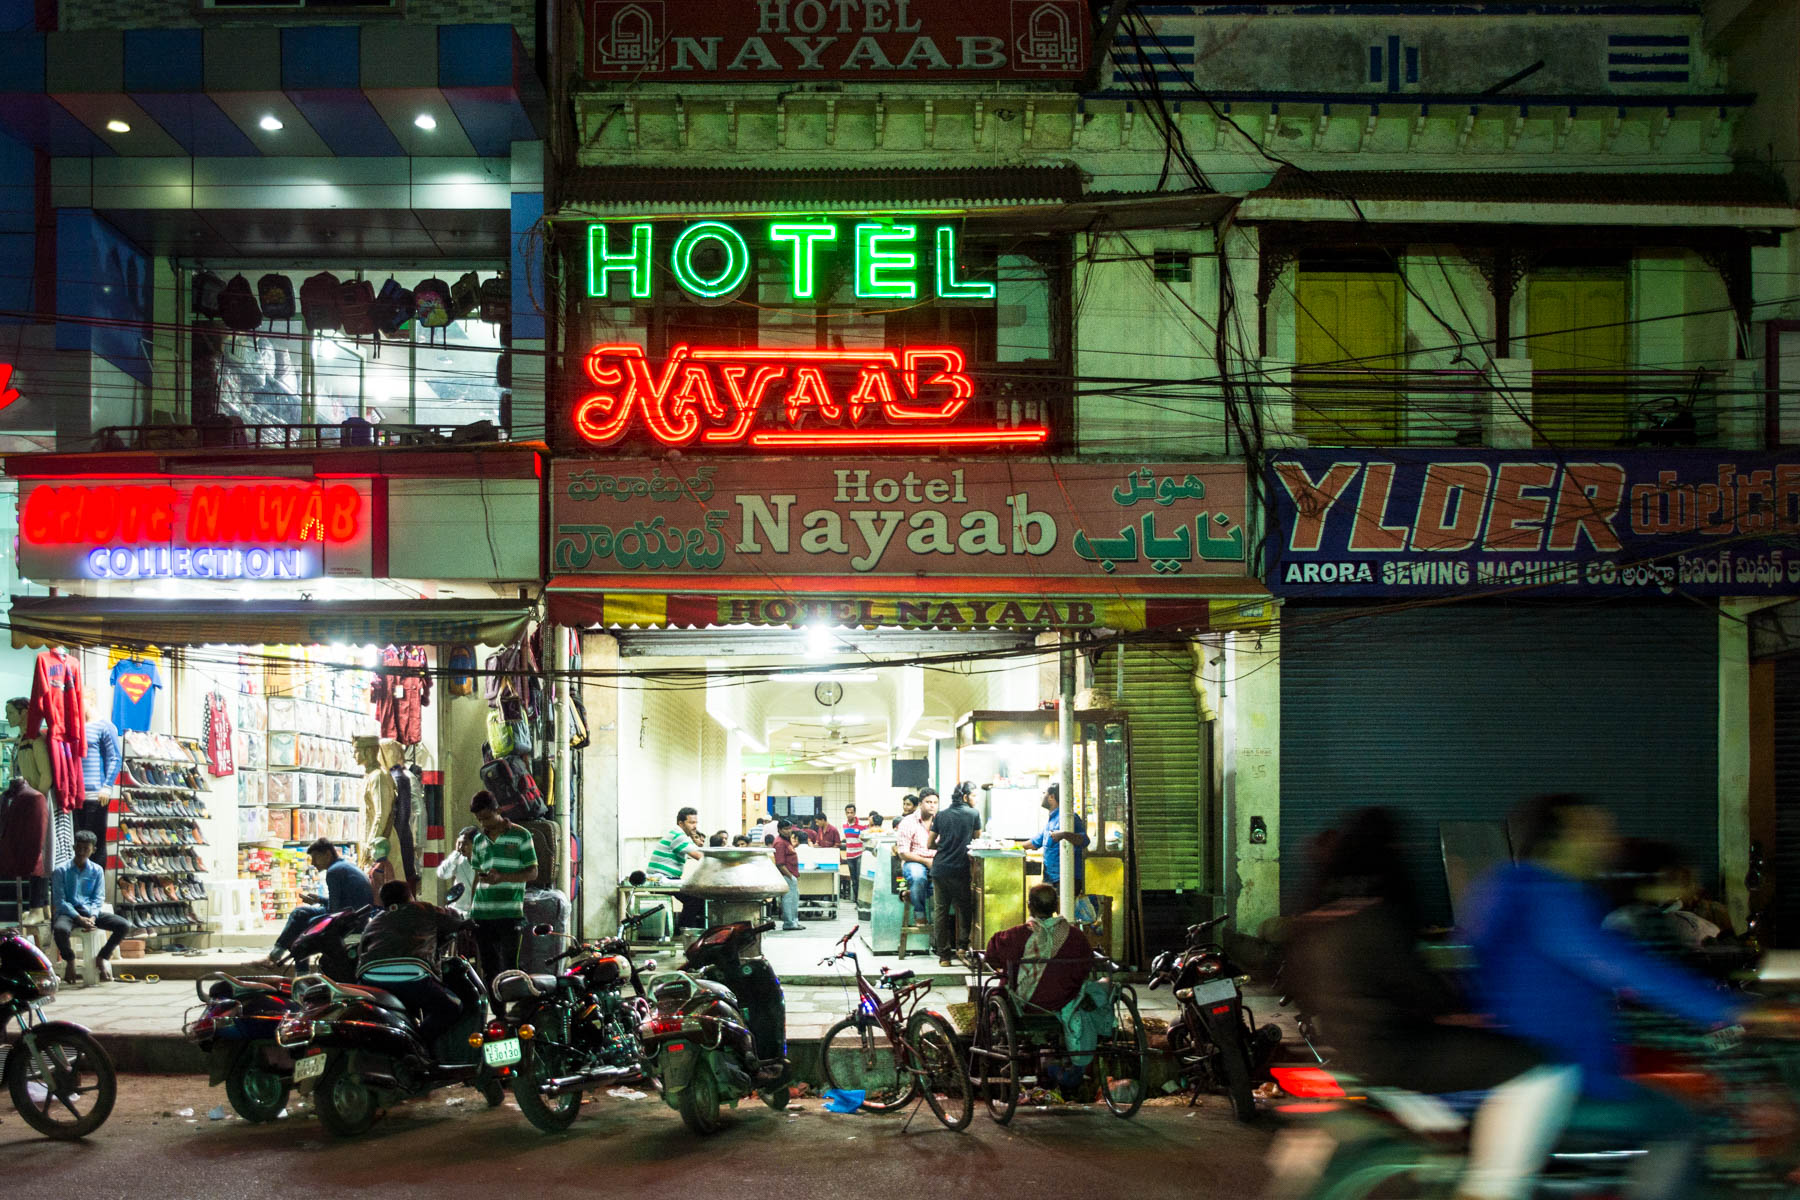 Where and what to eat in Hyderabad's Old City - Hotel Nayaab in Hyderabad, India - Lost With Purpose